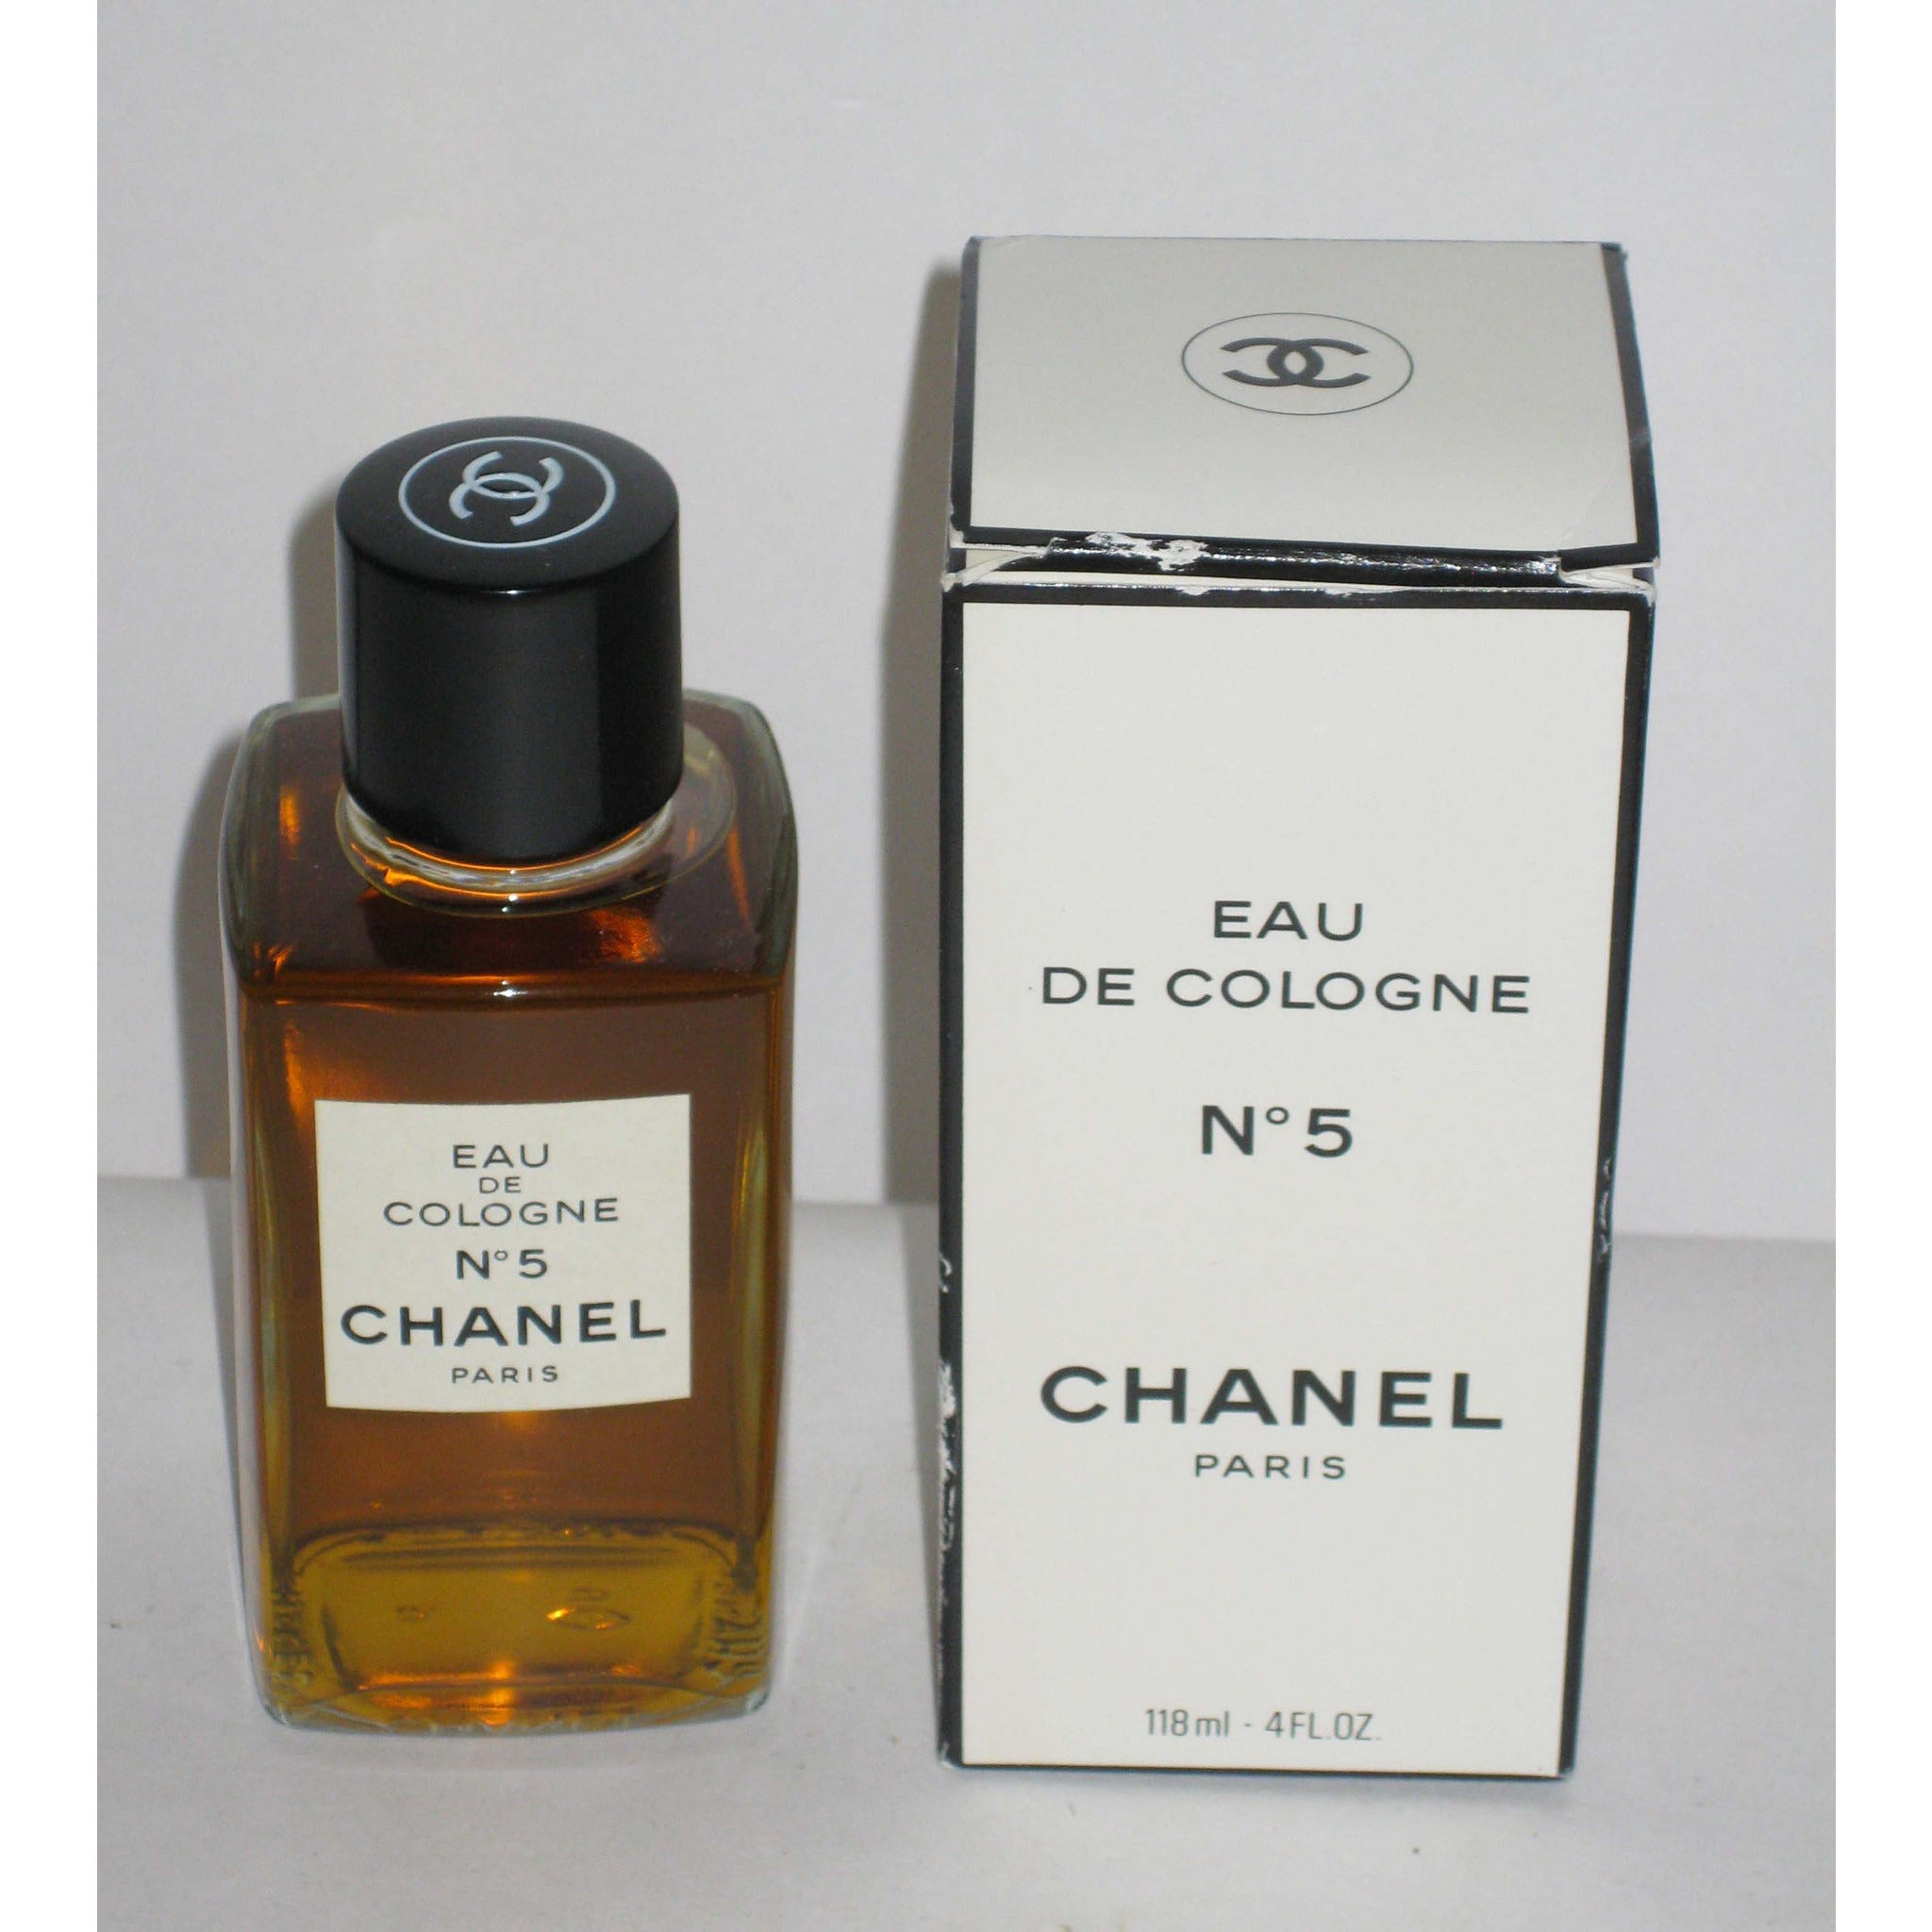 Vintage Chanel No 5 Eau Cologne